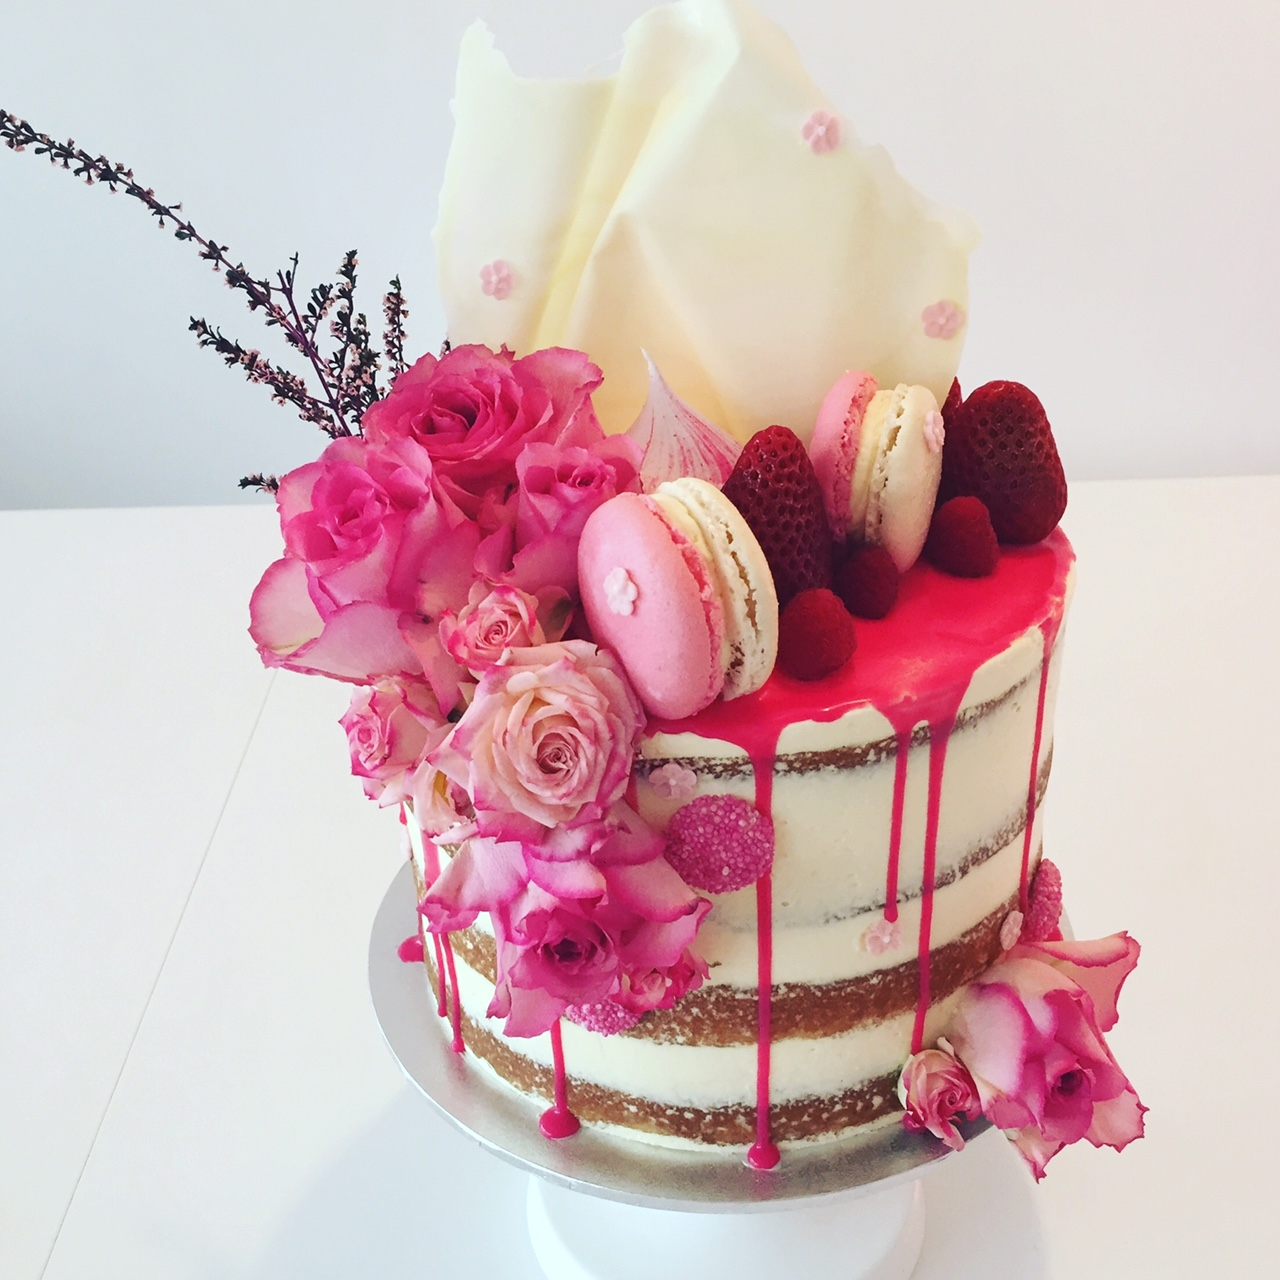 This drizzled hot pink cake by Art of Baking! Check them out in the ...